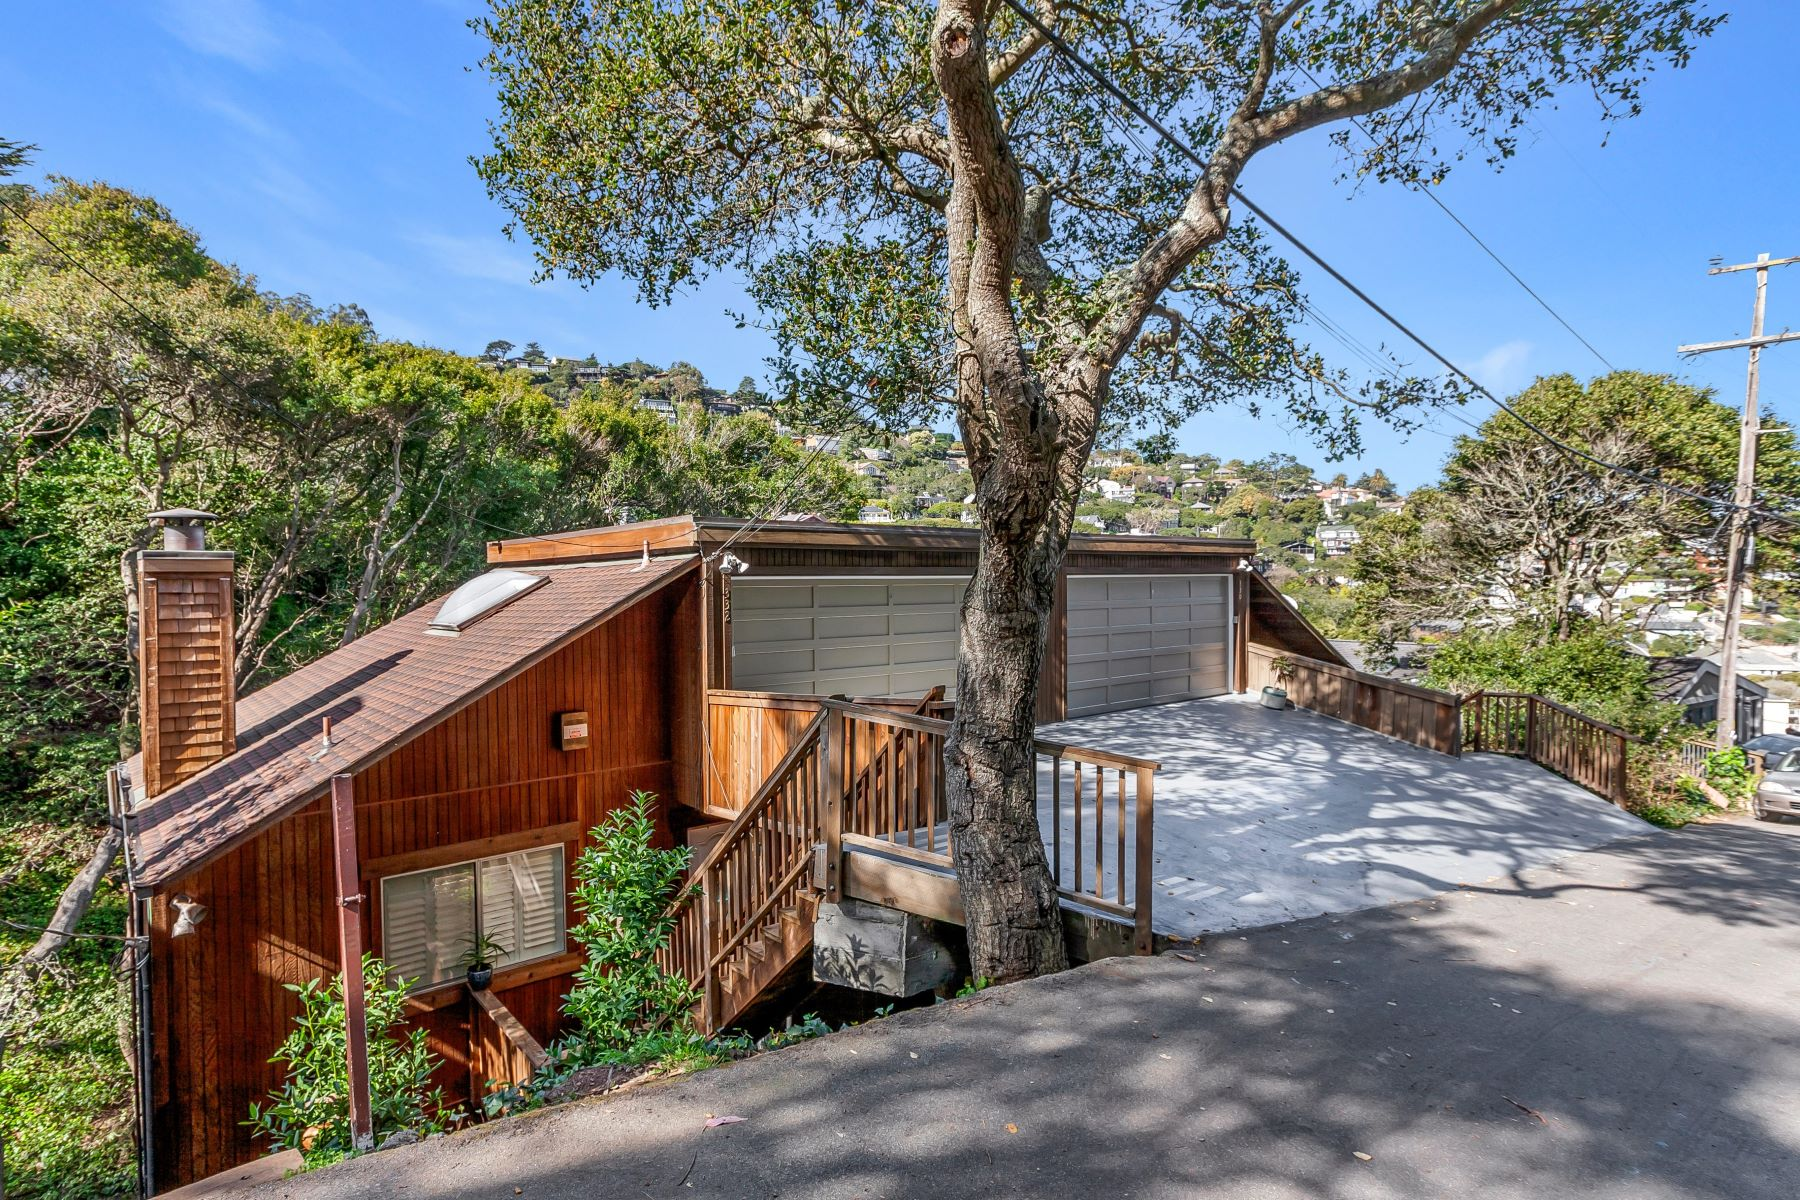 Duplex Homes のために 売買 アット Sausalito Duplex ‒ Income Property 330-332 Sausalito Boulevard, Sausalito, カリフォルニア 94965 アメリカ